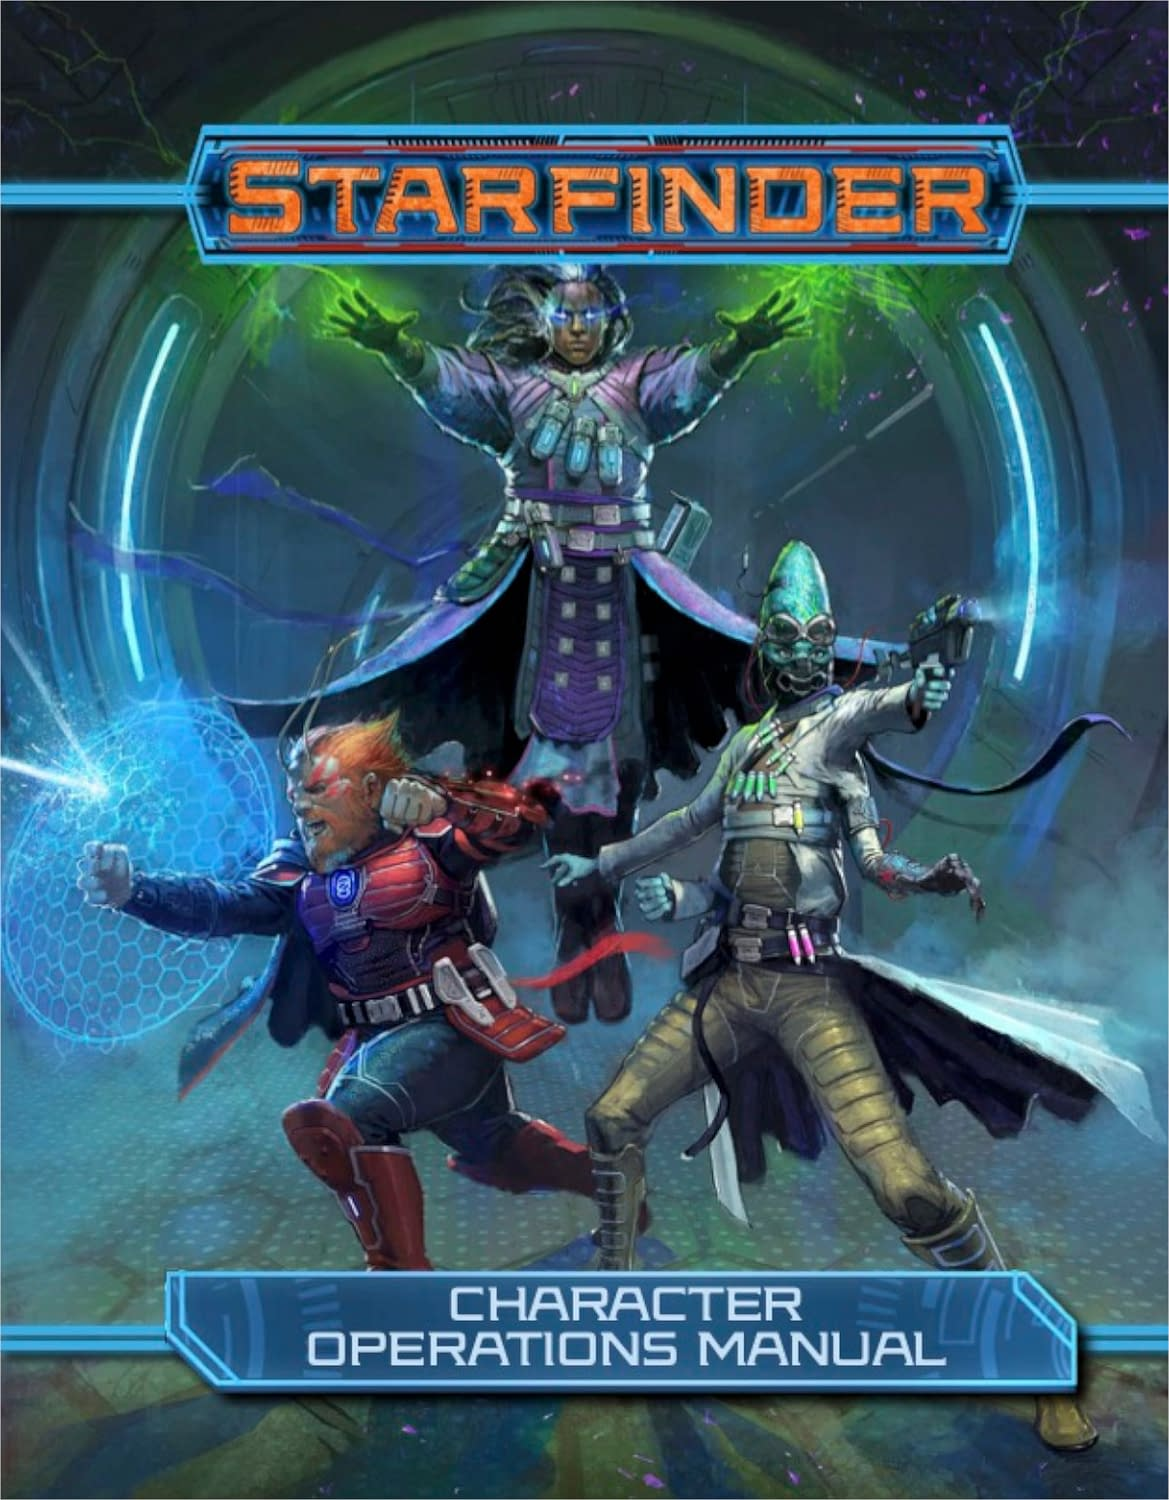 """Starfinder Character Operations Manual"" Brings New Classes"